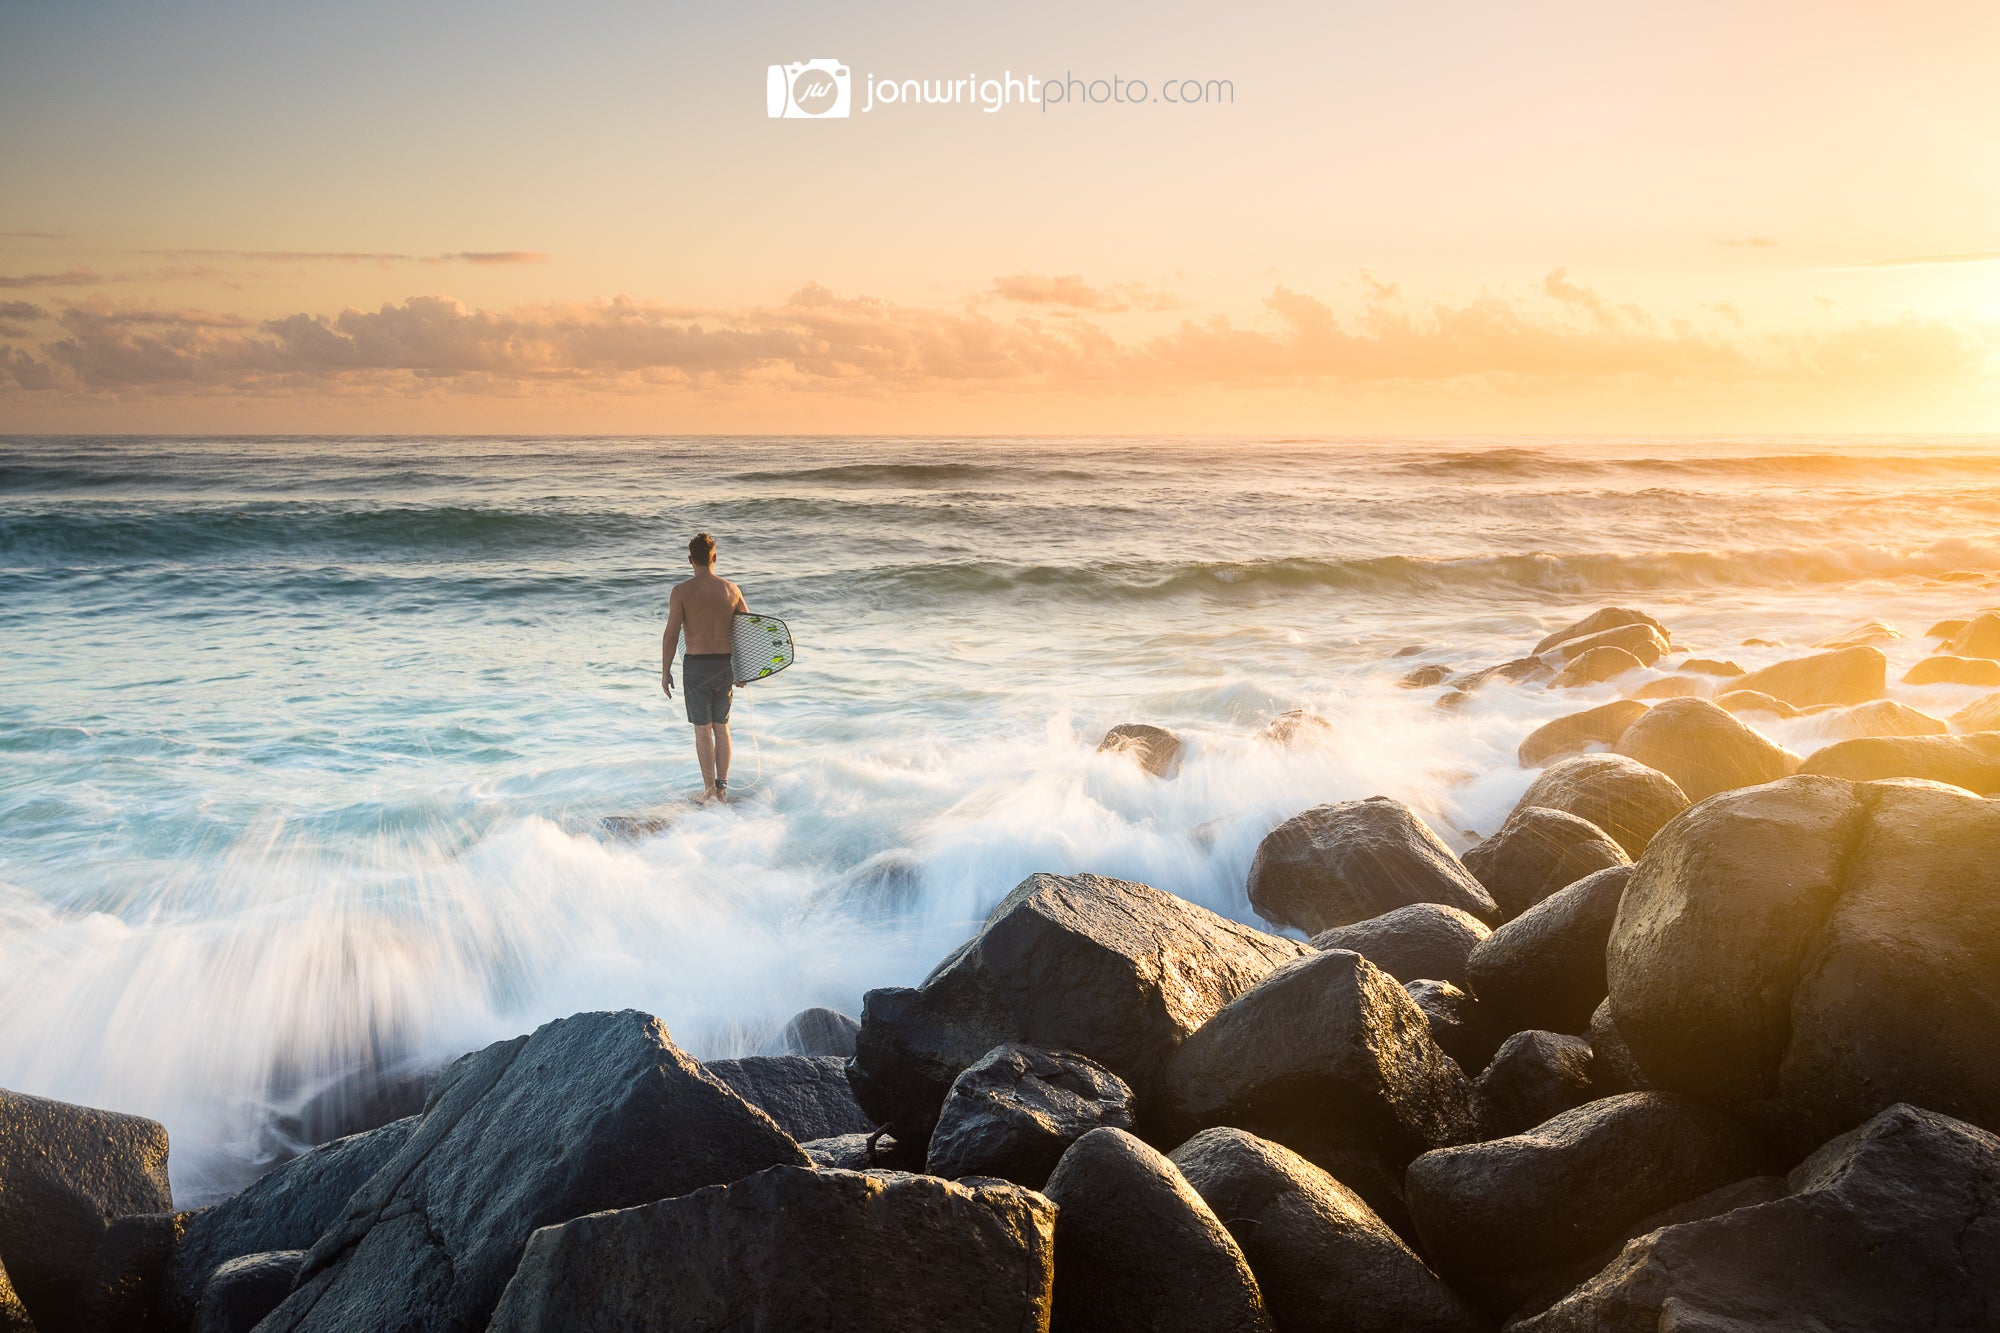 Burleigh Heads Photography